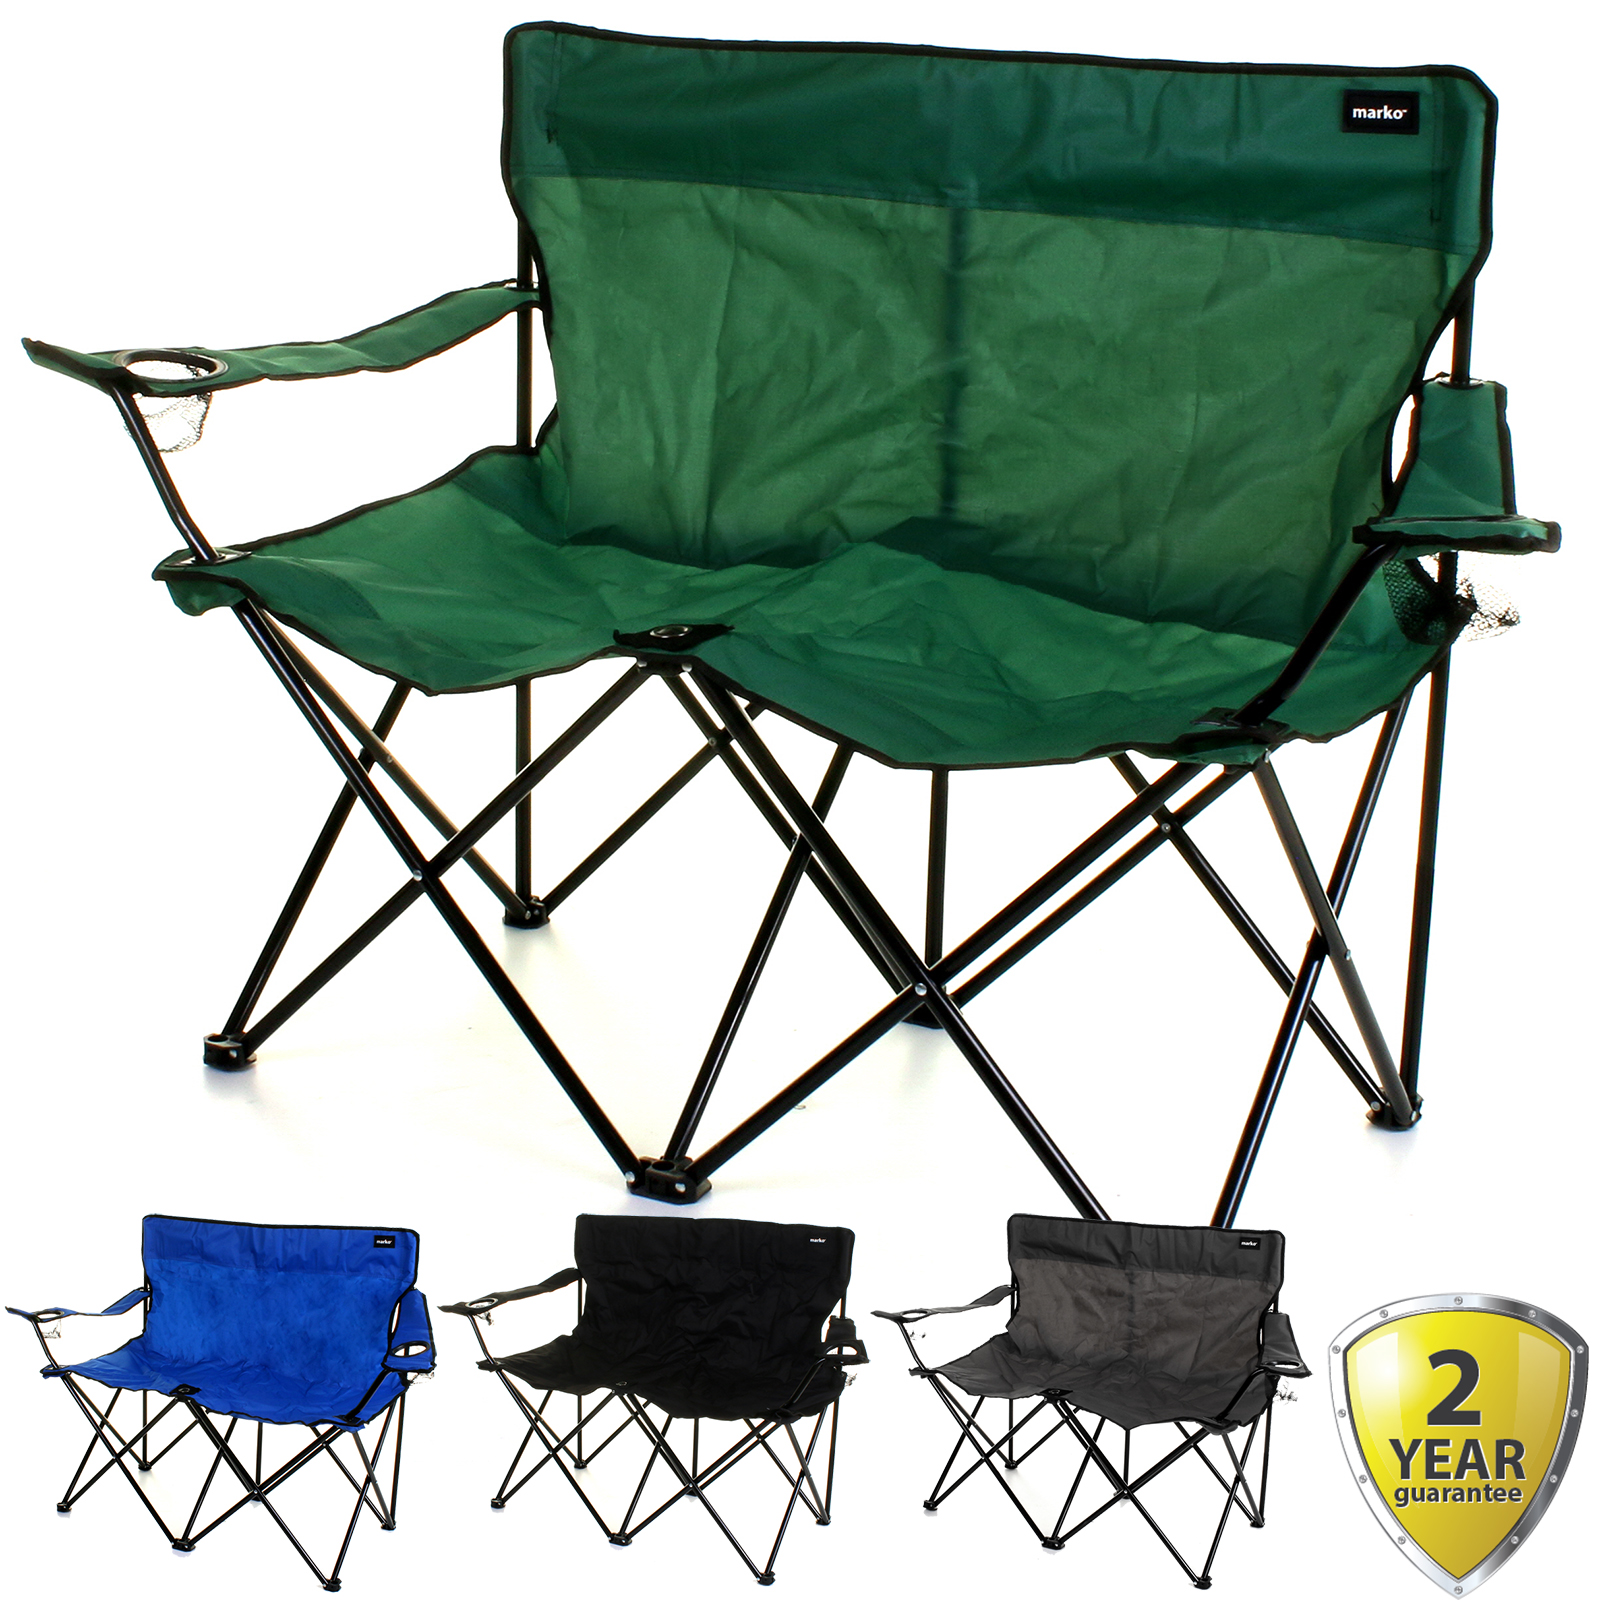 Double Camping Chair Details About Double Camping Chair 2 Seater Folding Portable Fishing Picnic Steel Festival New